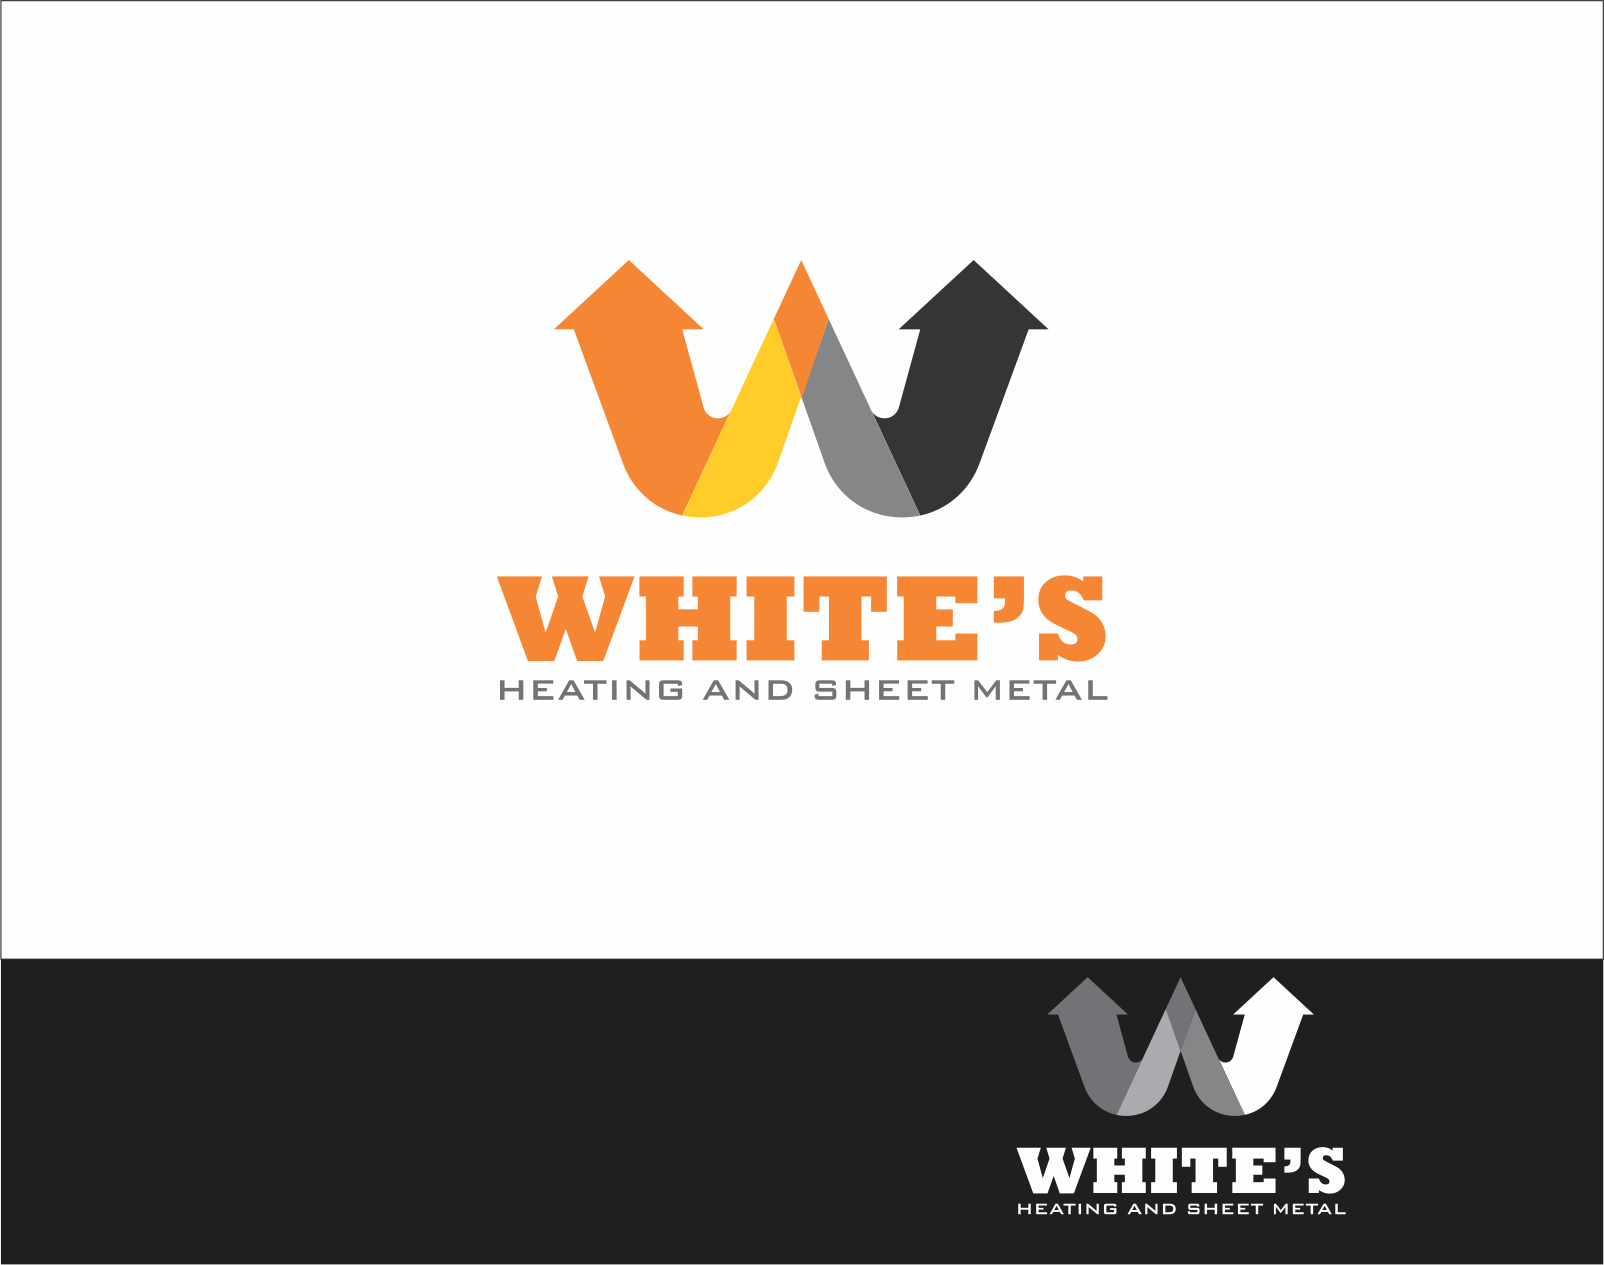 Logo Design by Armada Jamaluddin - Entry No. 163 in the Logo Design Contest Imaginative Logo Design for White's Heating and Sheet Metal.